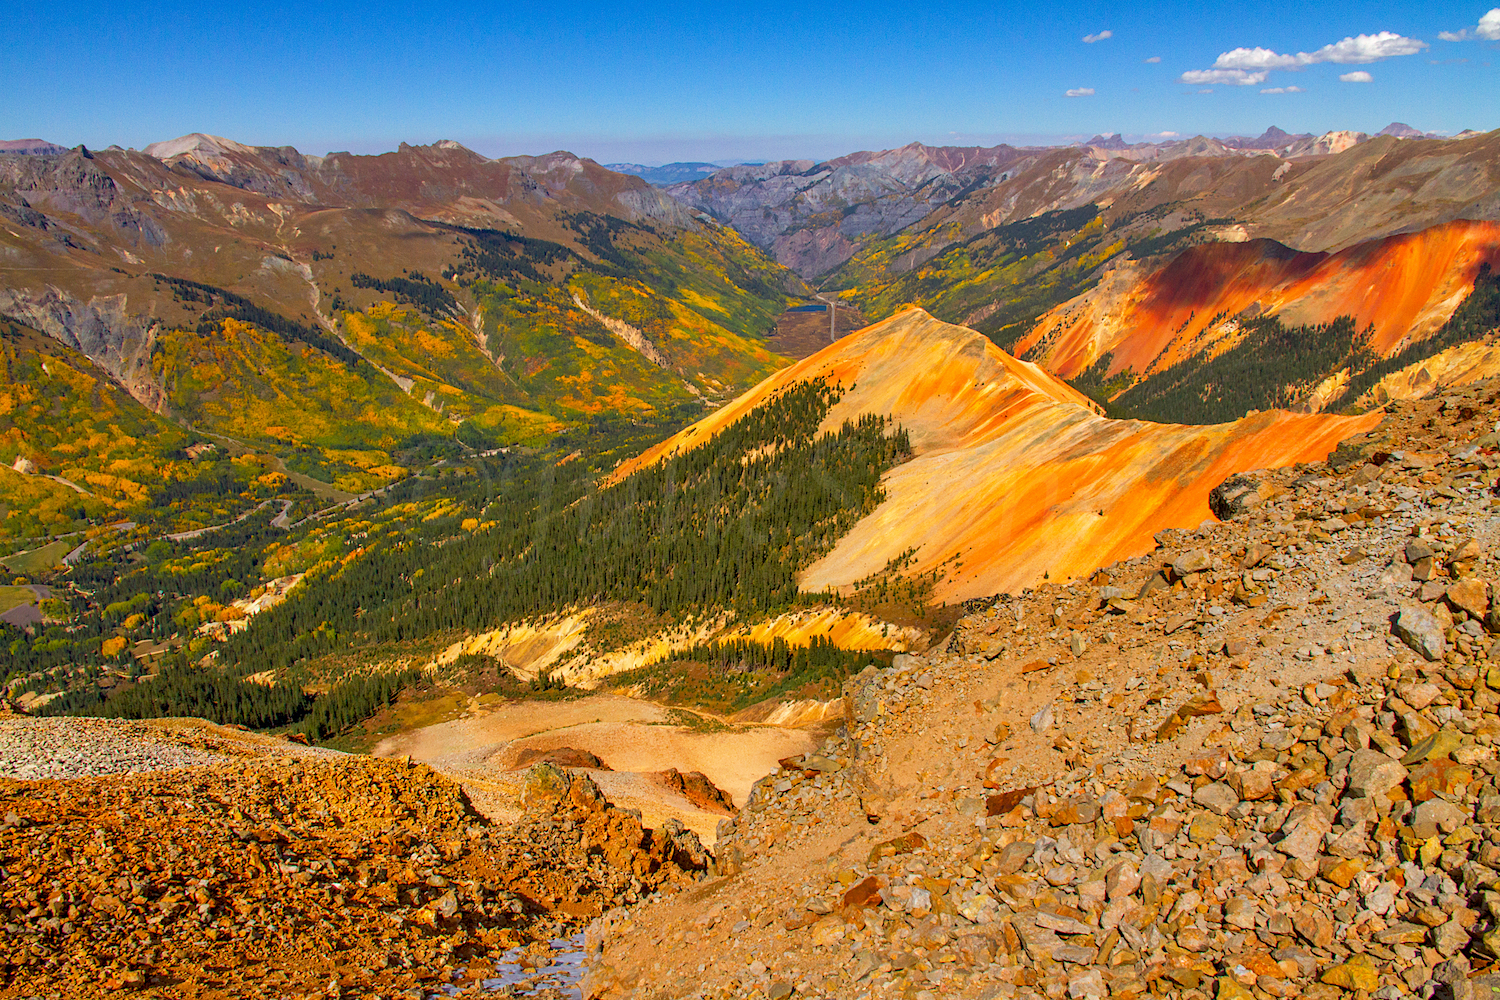 Red Mountain #3, Image # 6307